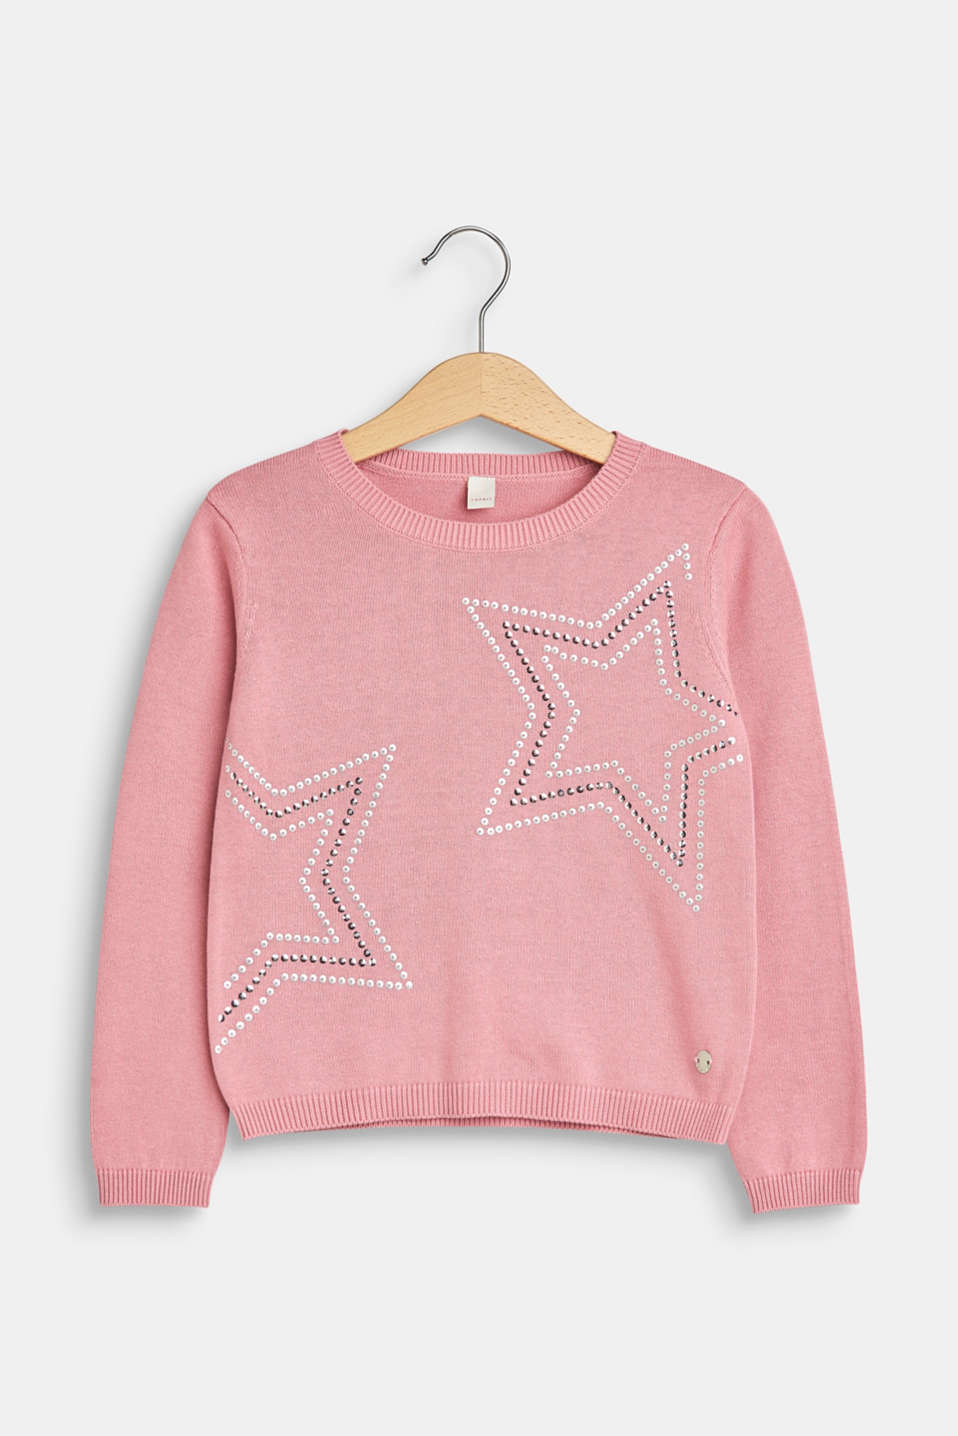 Esprit - Knitted jumper with decoration stars, 100% cotton